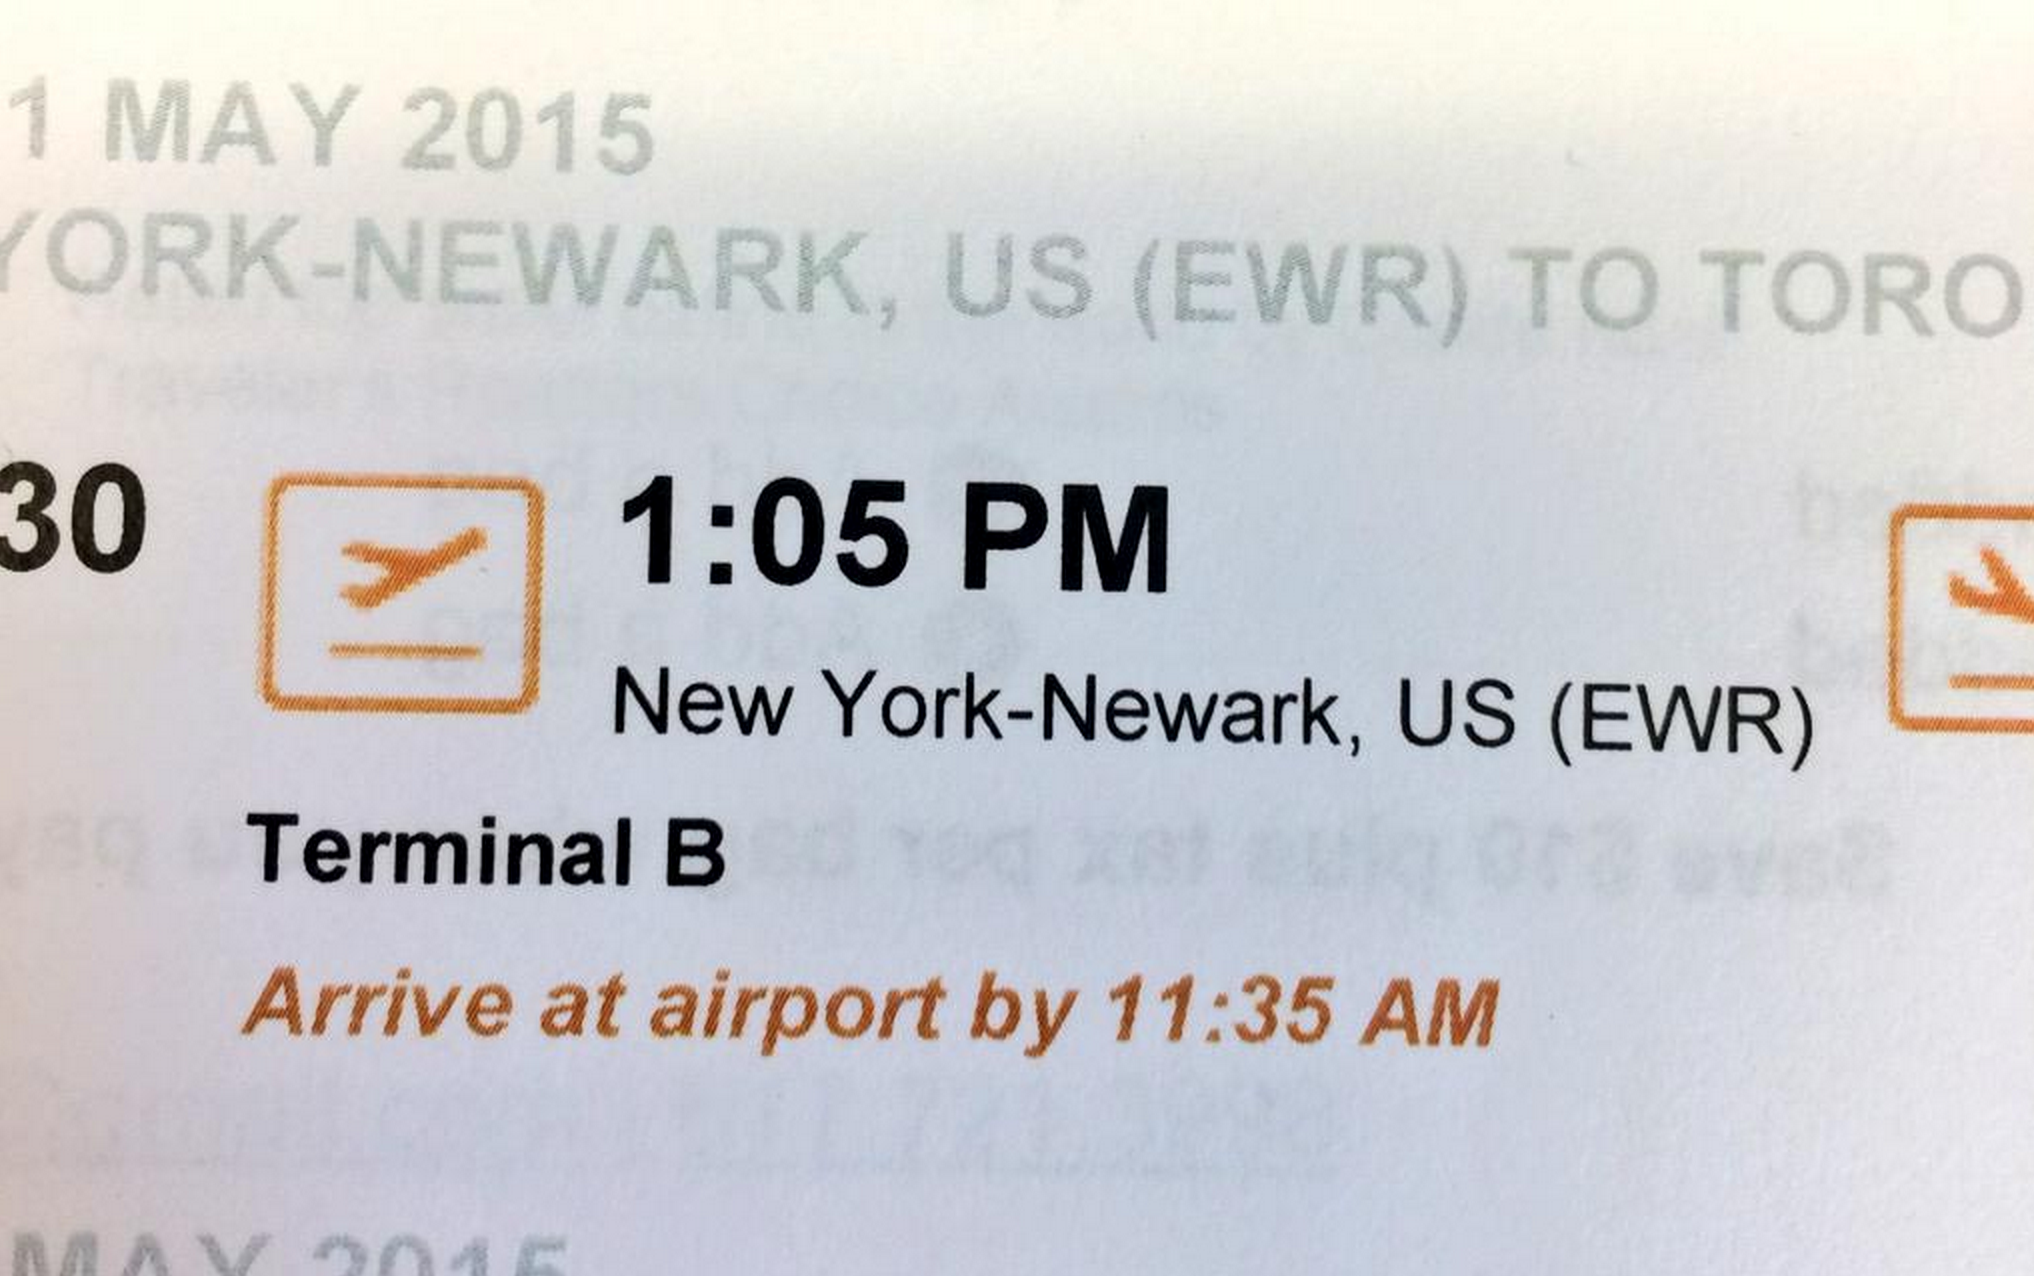 Porter Airlines (Canada) gives a suggested time to arrive at the airport